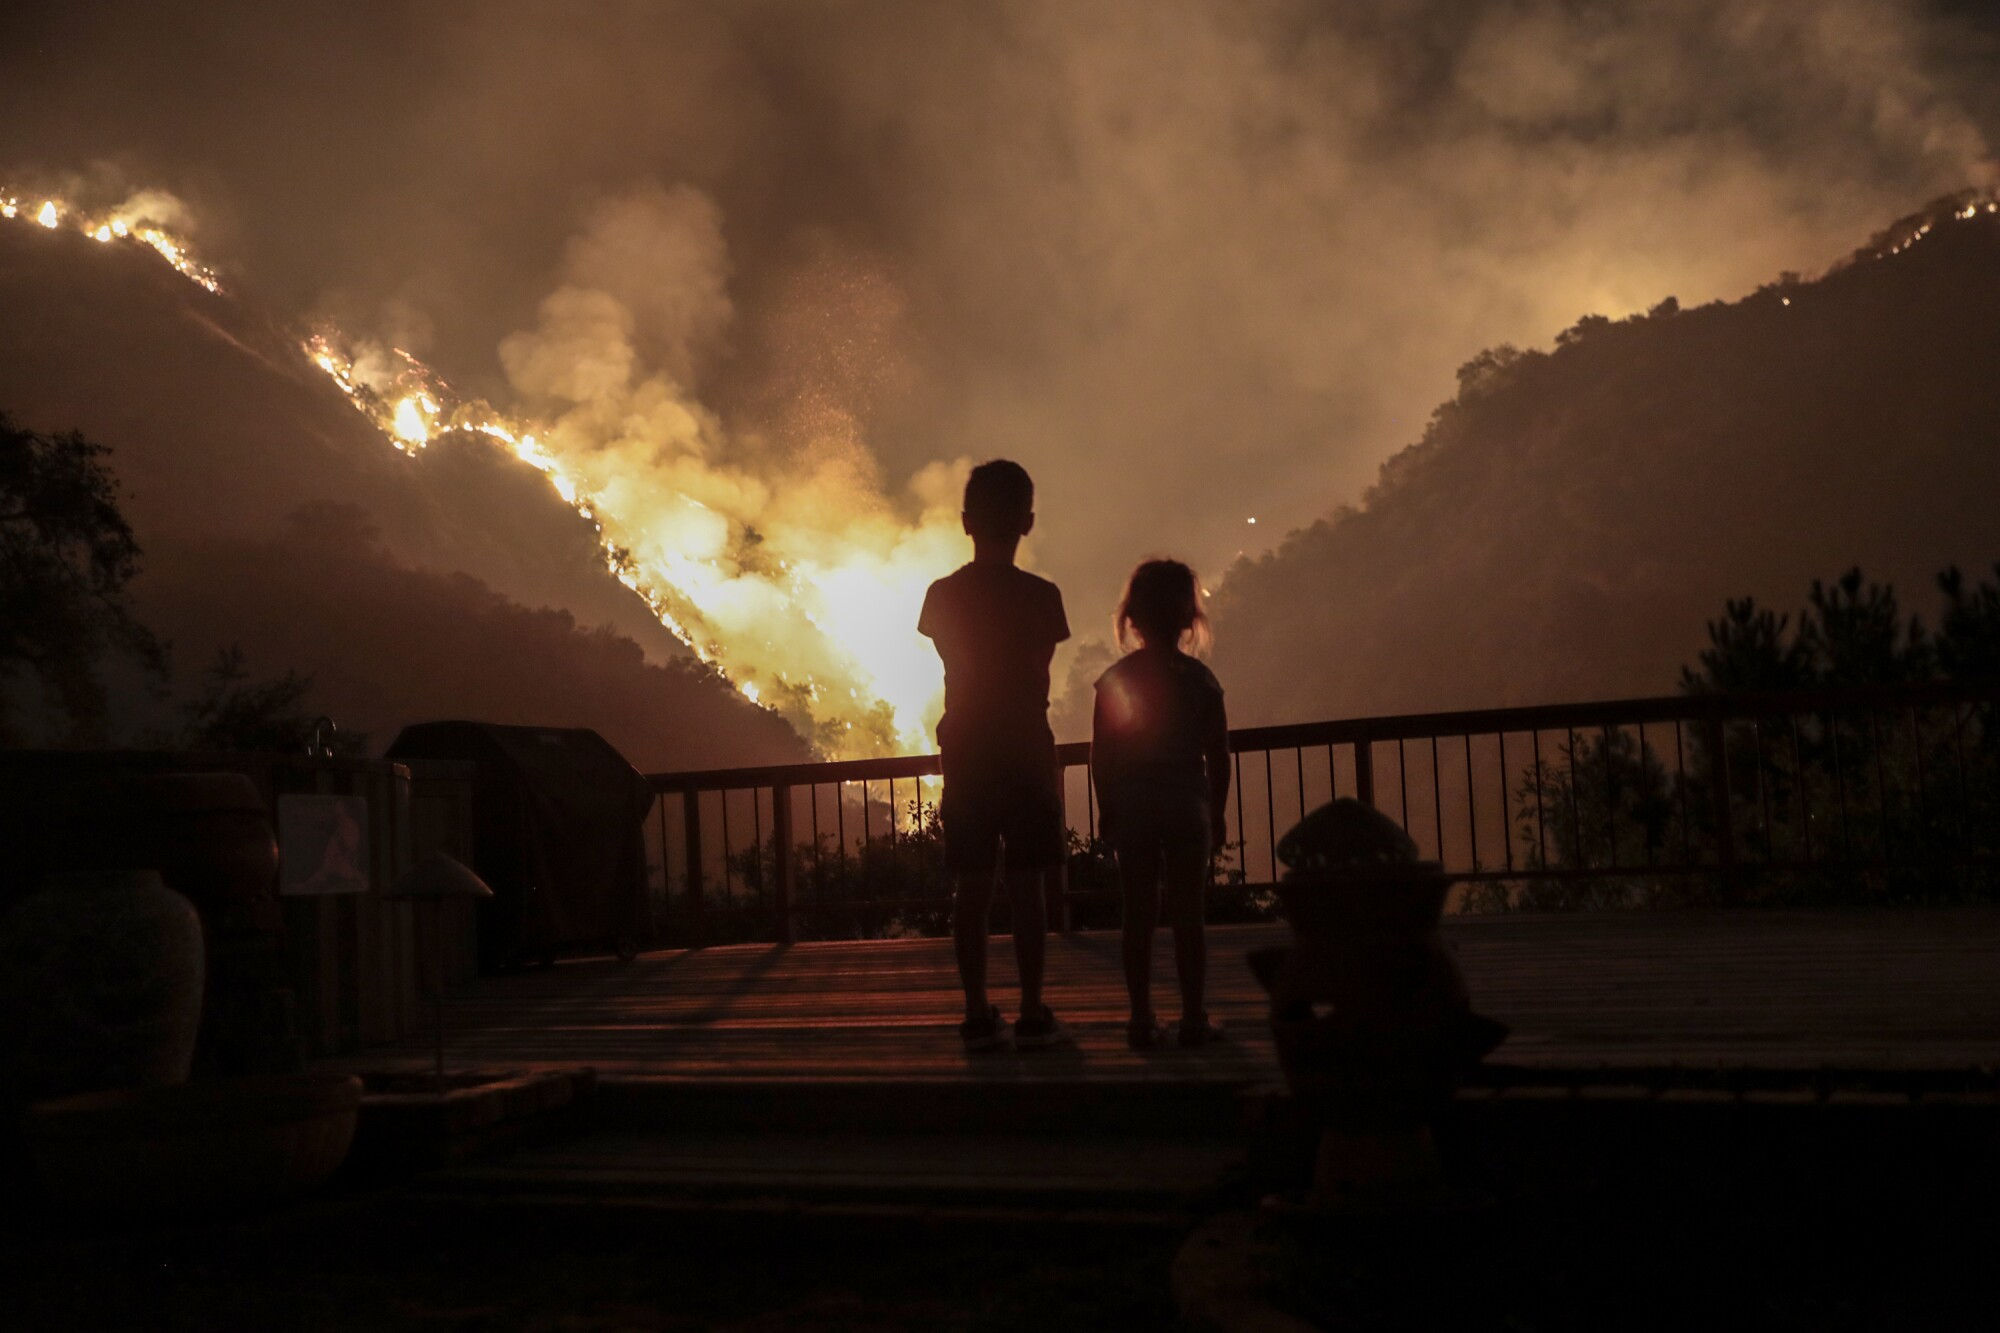 Castle Snider, 8, and Iris Snider, 4, look on as the Bobcat fire burns near homes on Oakglade Drive, Monrovia.